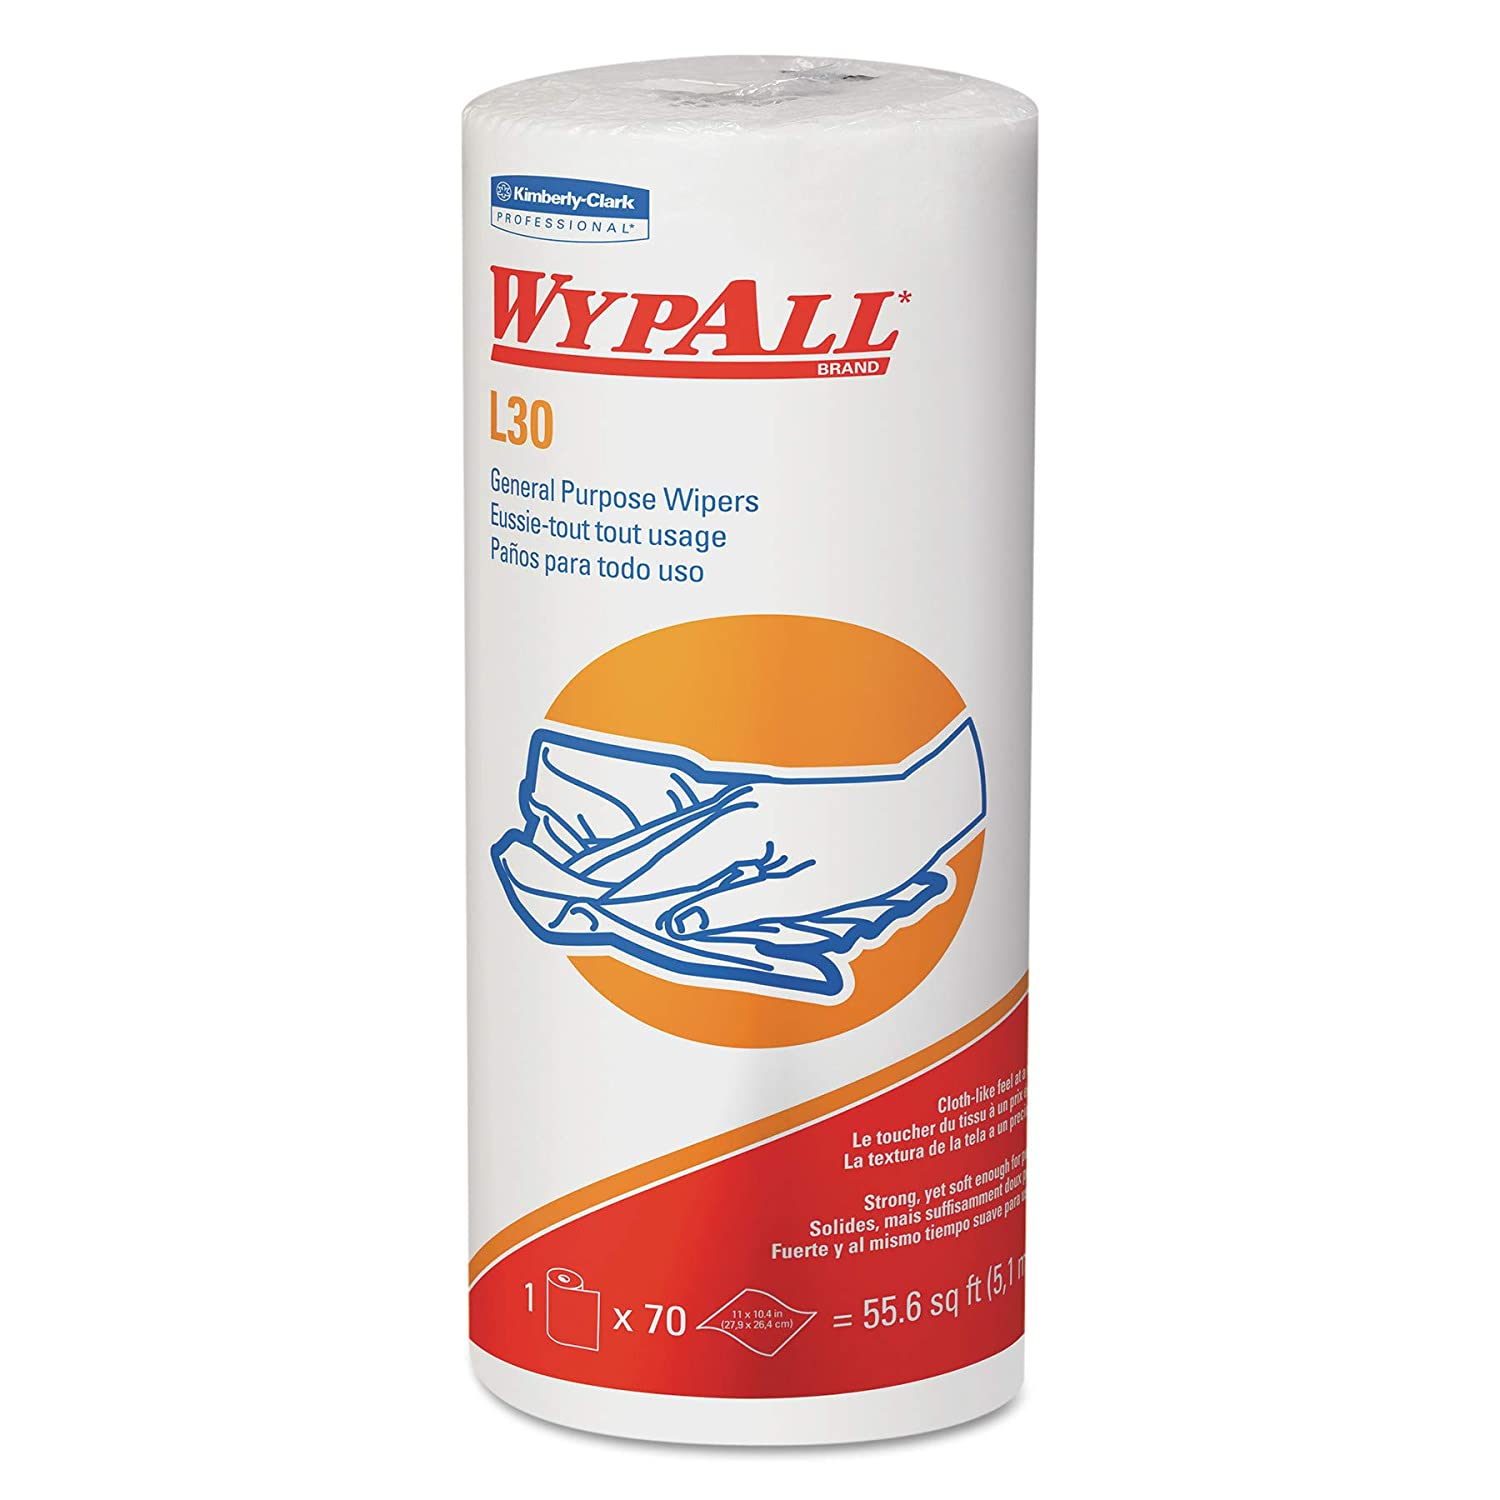 Wypall L30 DRC Towels (05843), Strong and Soft Wipes, White, 24 Rolls / Case, 70 Sheets / Small Roll, 1,680 Wipes / Case